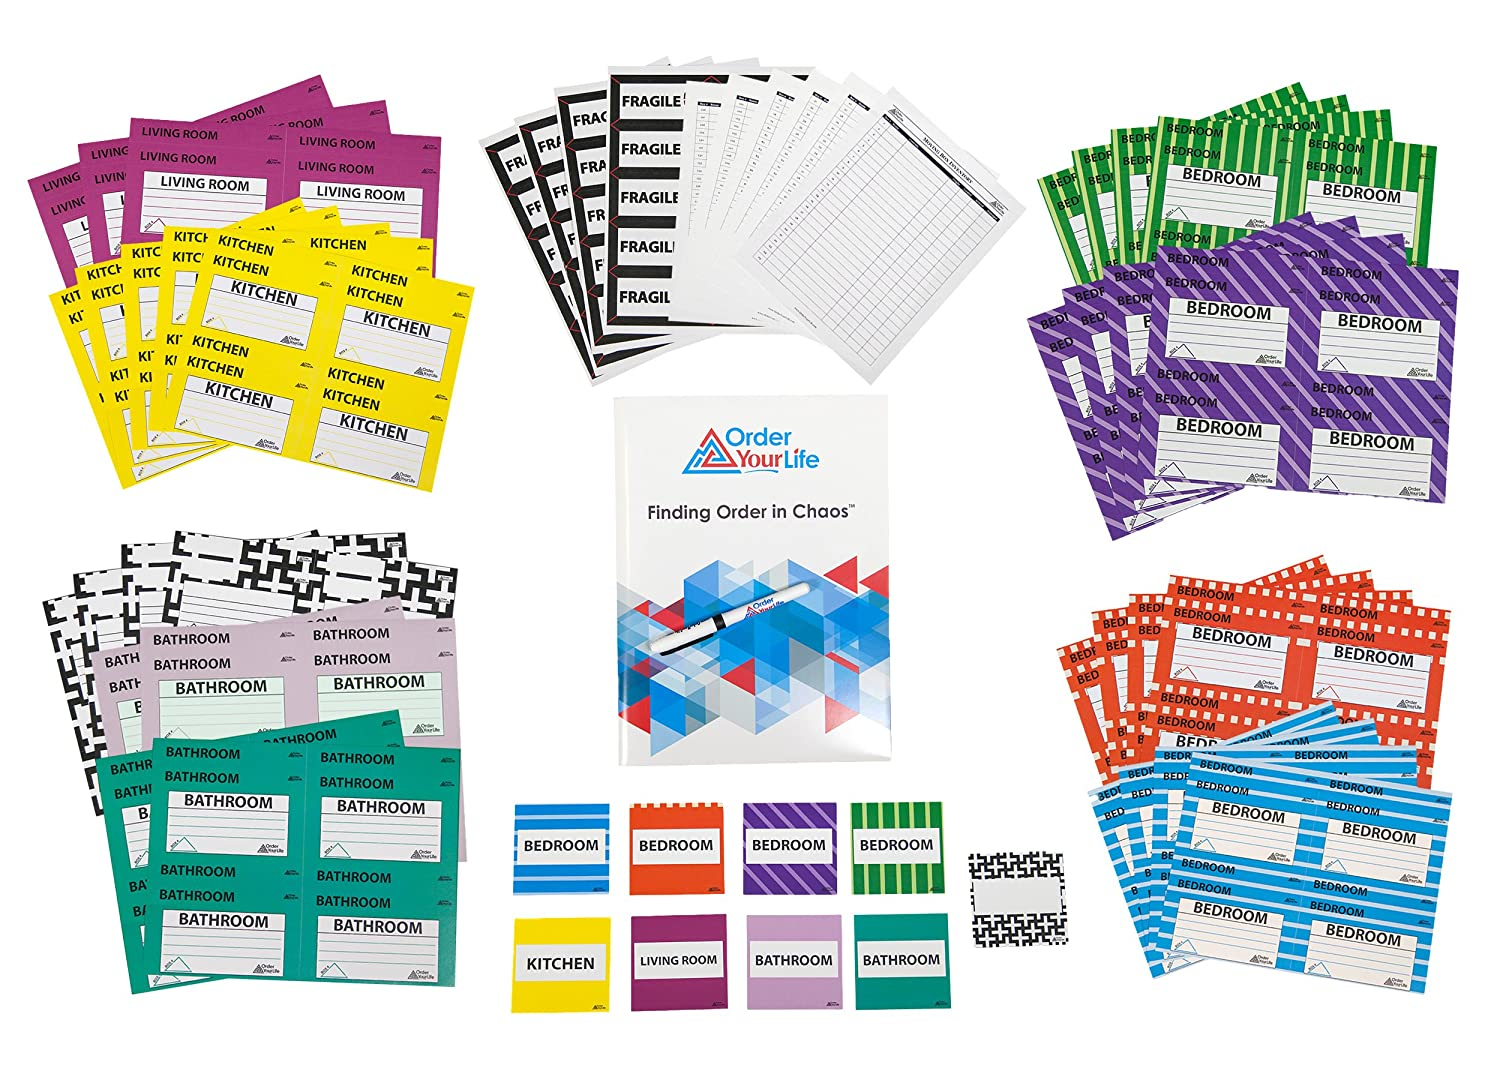 6997cd07bb4 4 Bedroom Moving Label Kit - 424 Large Color Coded Moving Labels ...